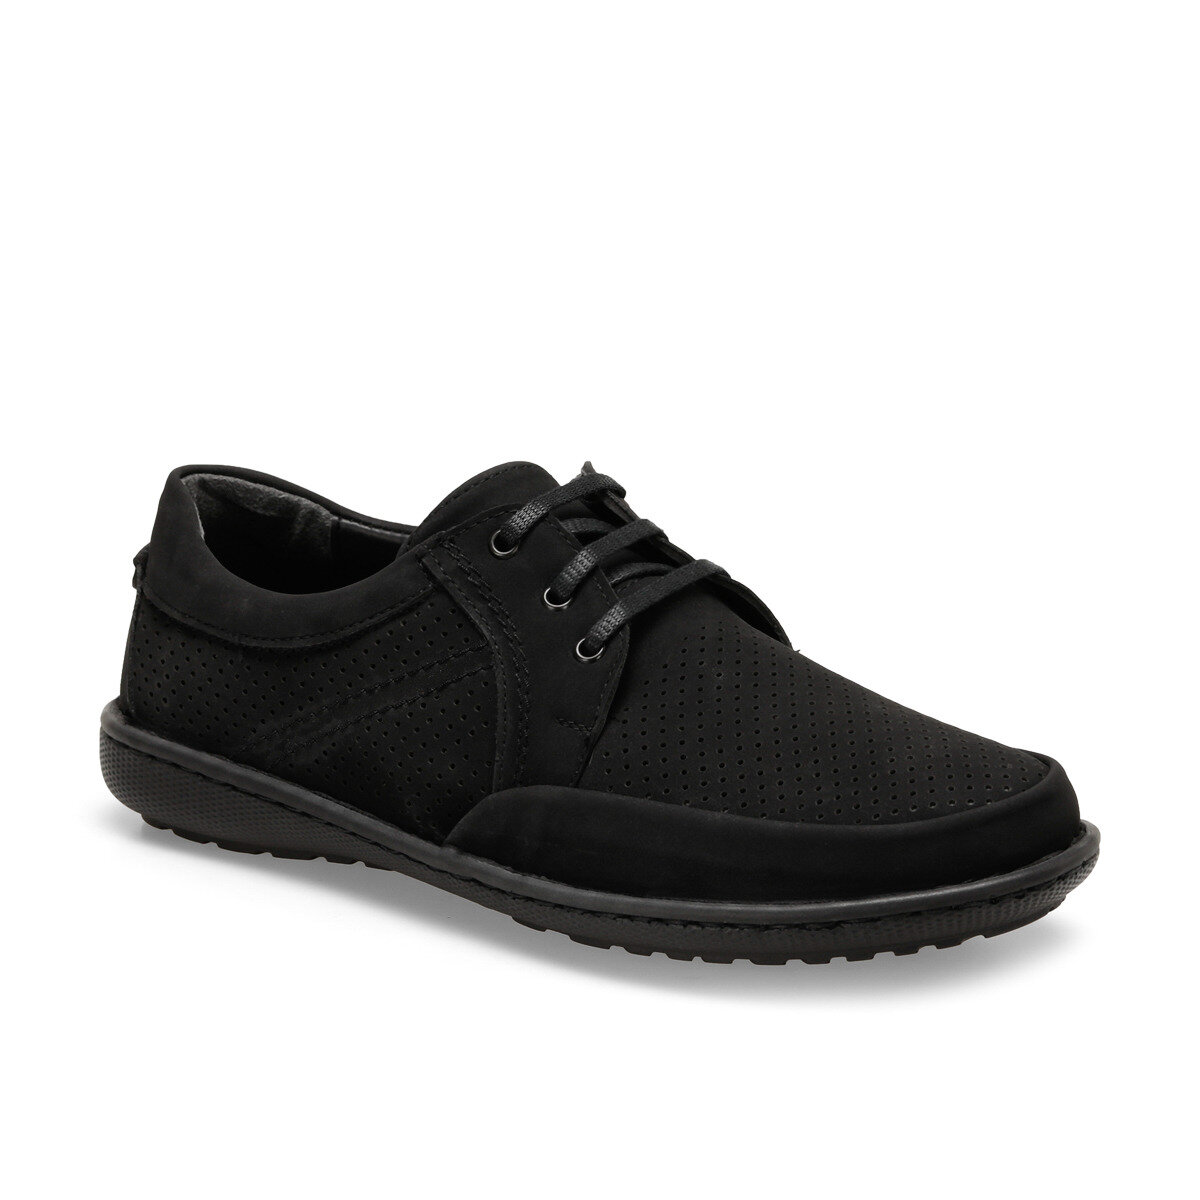 FLO ZMRT-6 C Black Men 'S Classic Shoes Flexall